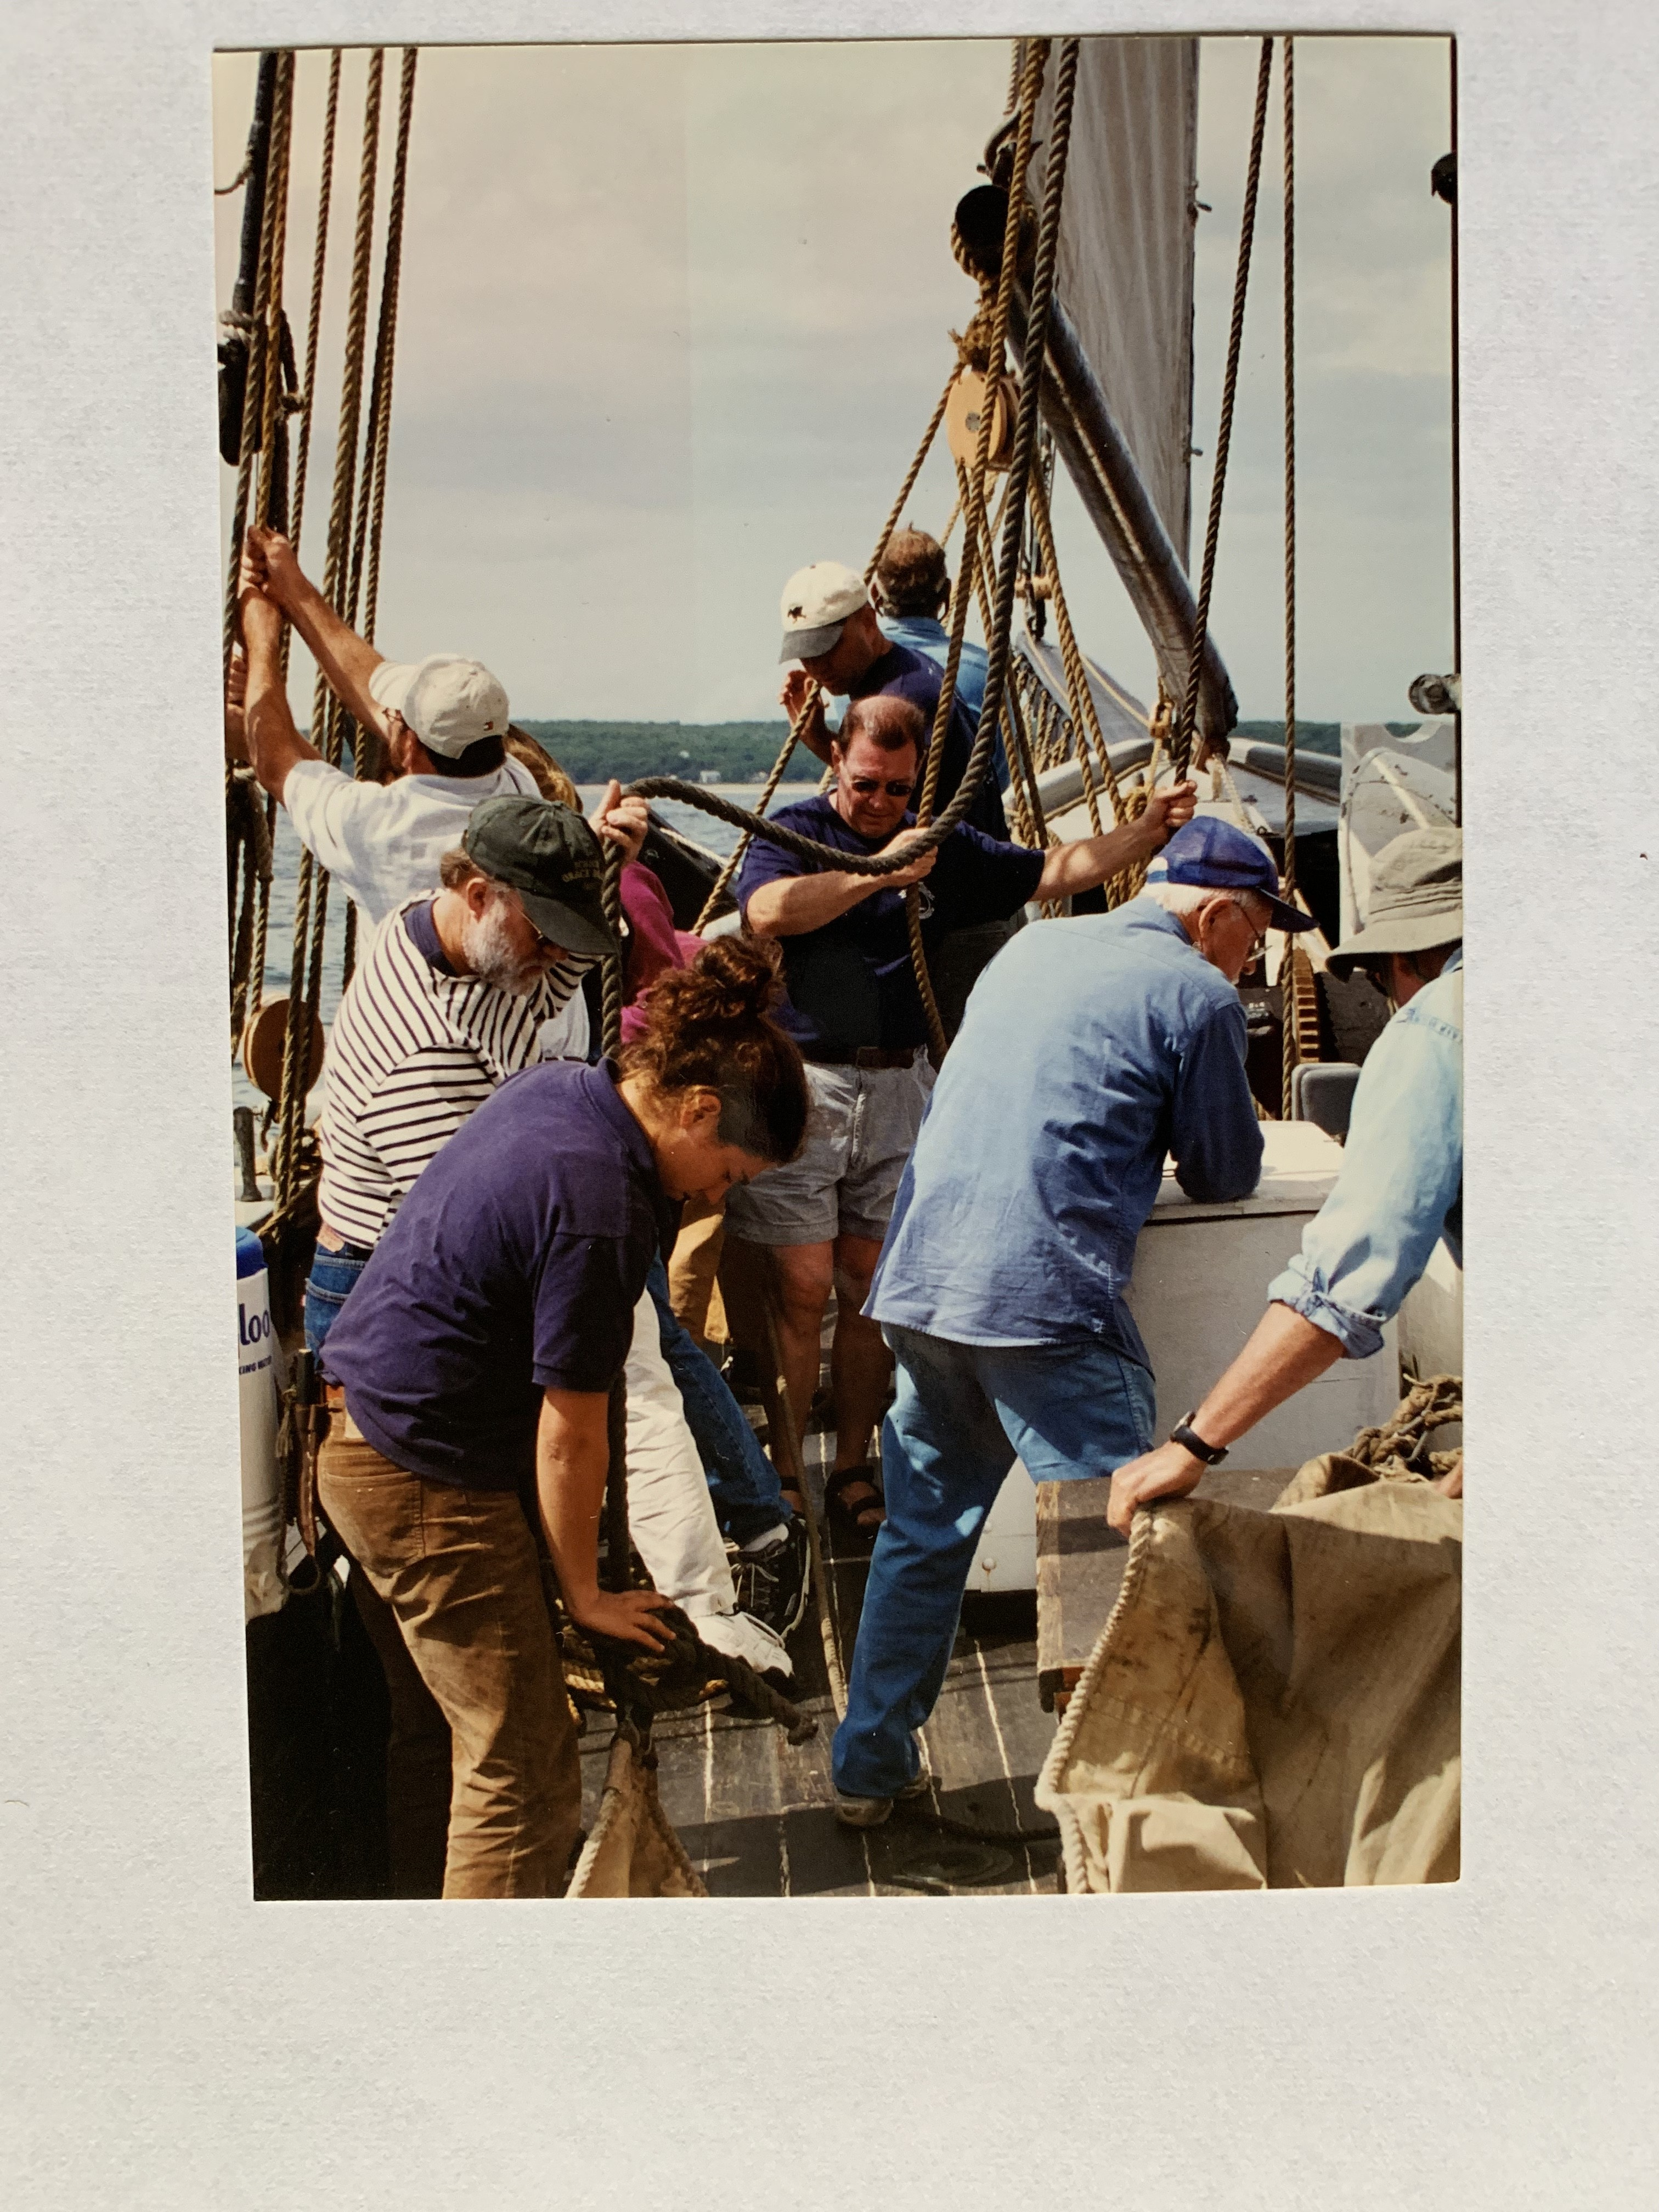 Here's the crew getting ready to raise the Fisherman after rigging it up.